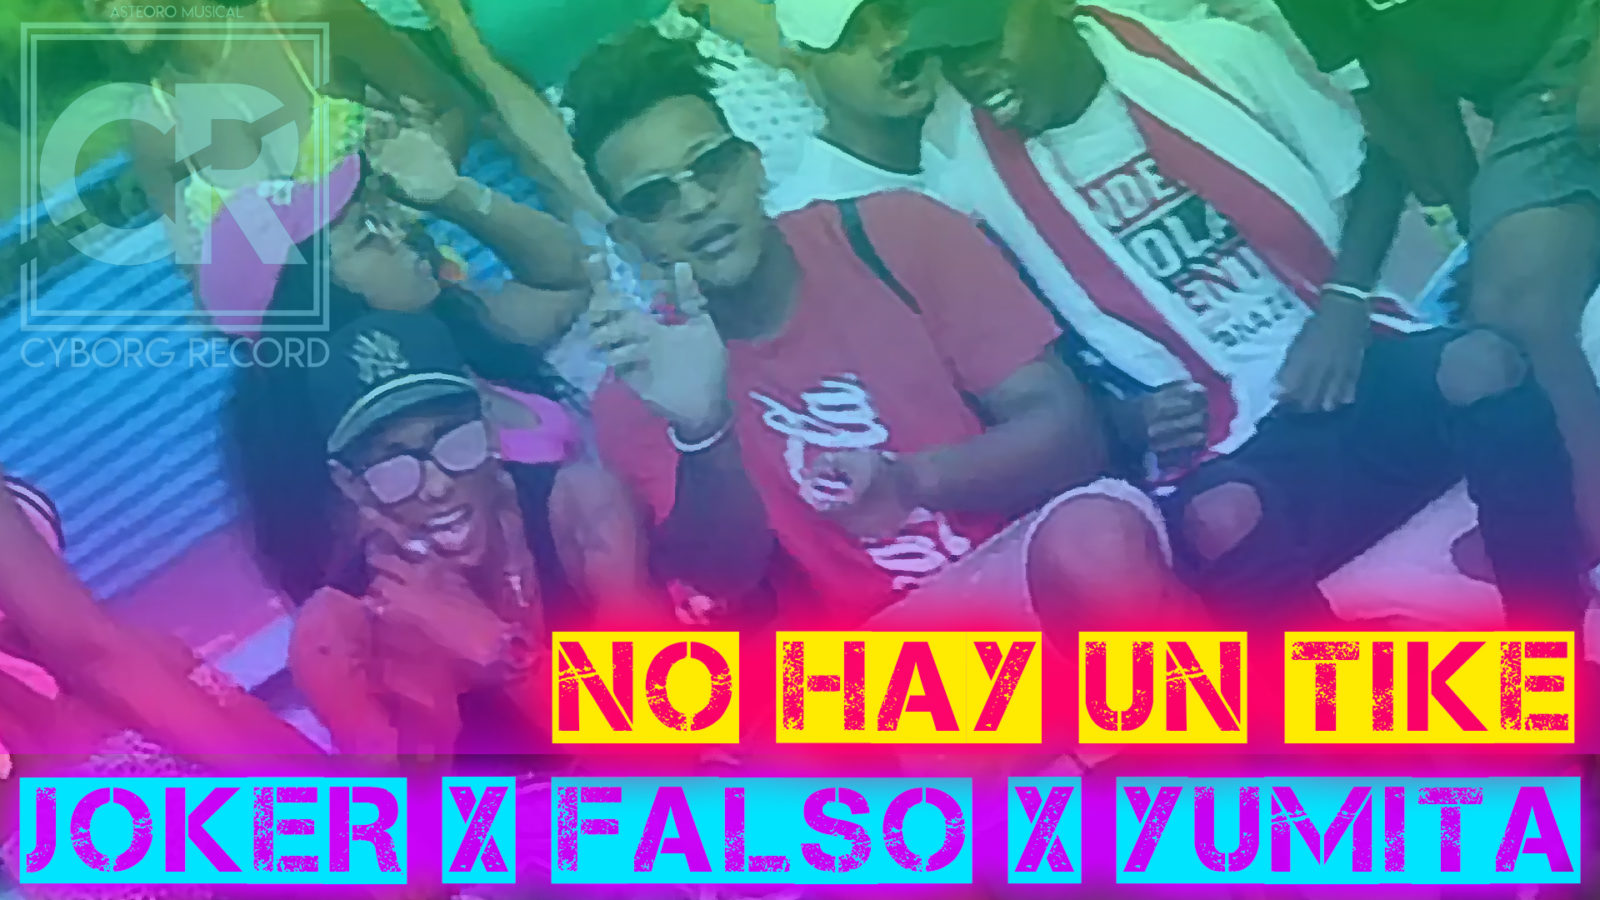 No Hay Un Tike - Cubaton Reggaeton Cubano Music Video